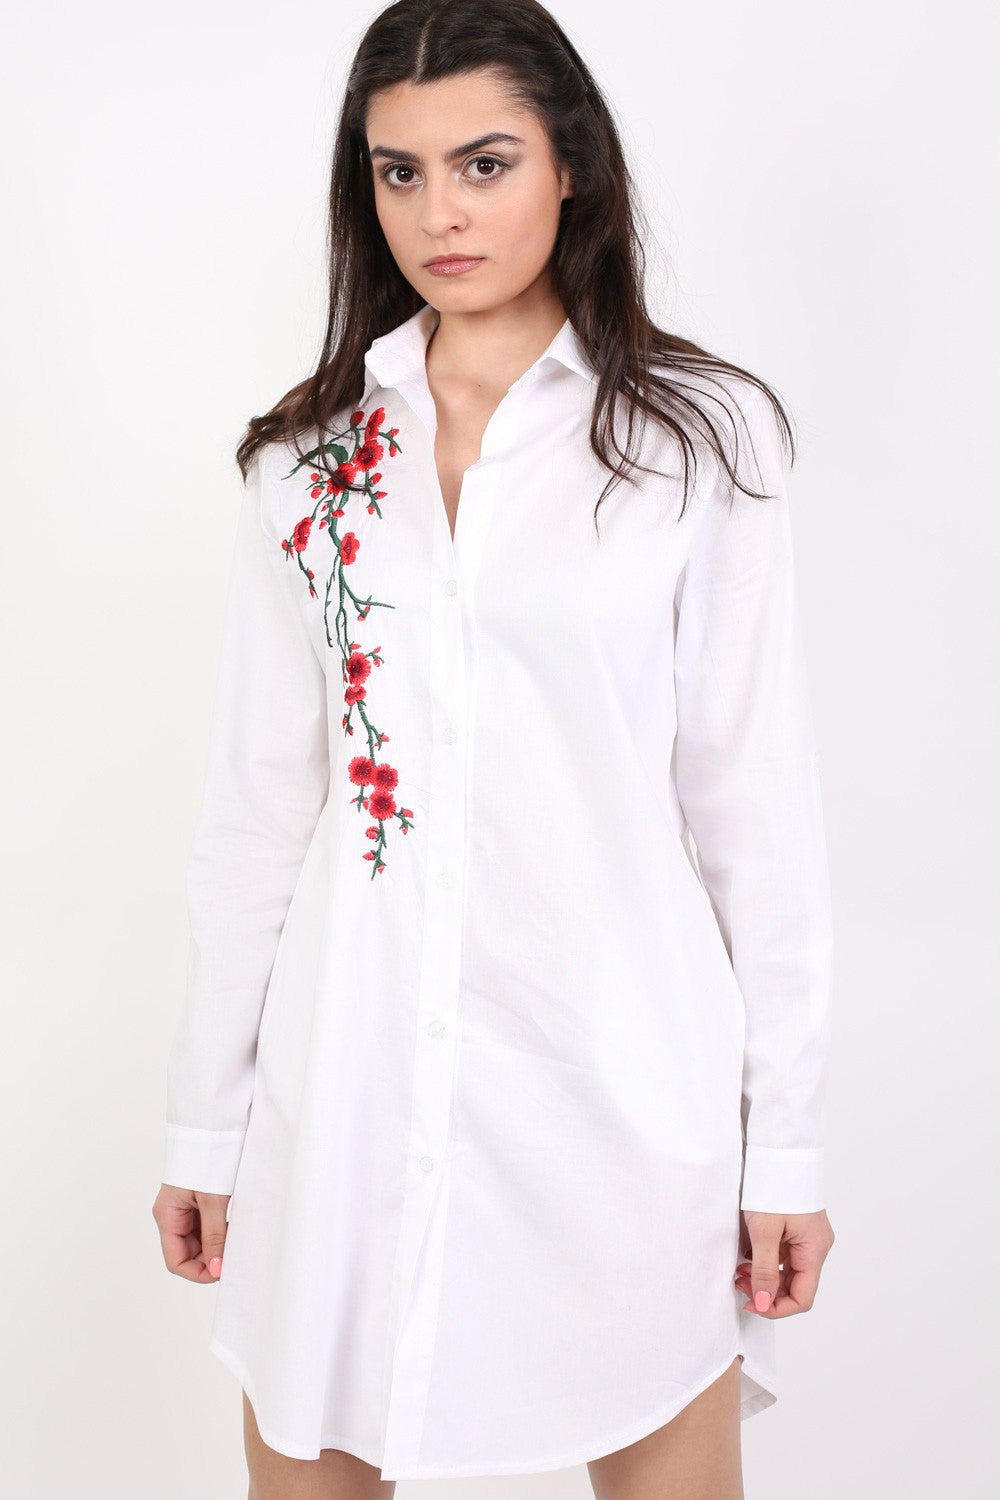 Floral Embroidered Shirt Dress in White MODEL FRONT